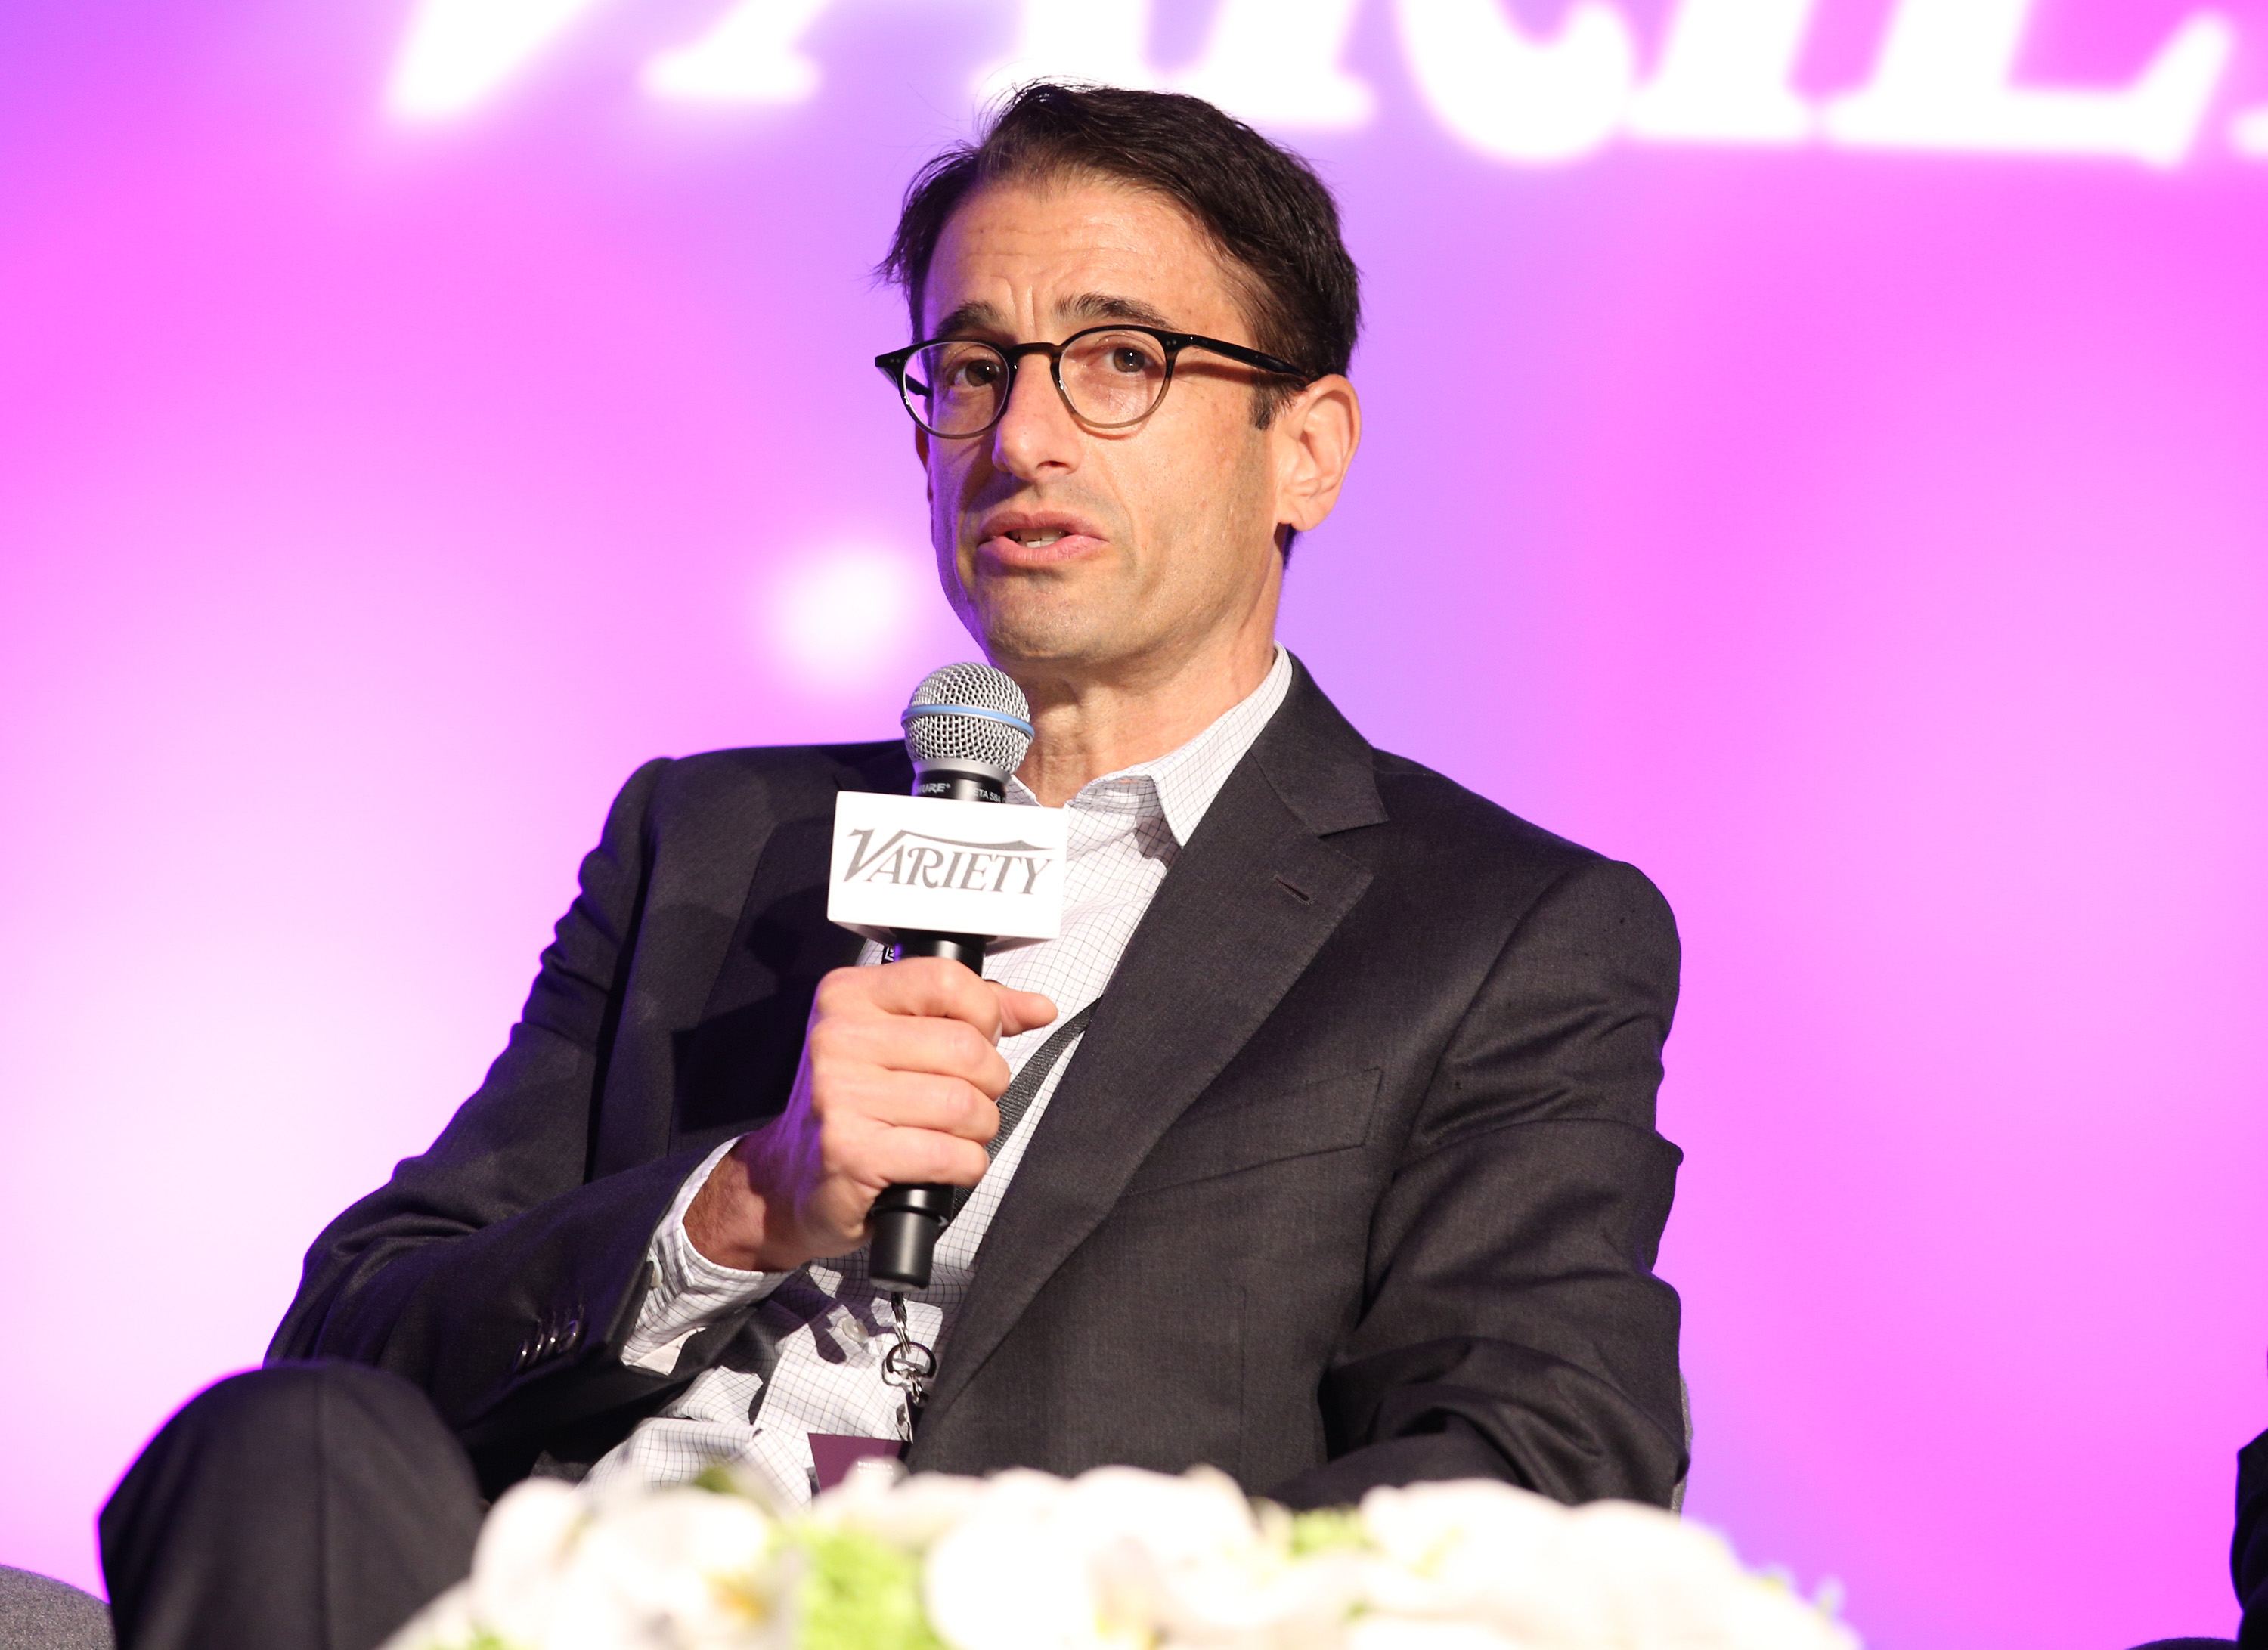 Warner Bros. Television Group President for Business and Strategy Craig Hunegs attends Variety's Spring 2014 Entertainment and Technology Summit at The Ritz-Carlton, Marina Del Rey on May 5, 2014 in Marina del Rey, California.